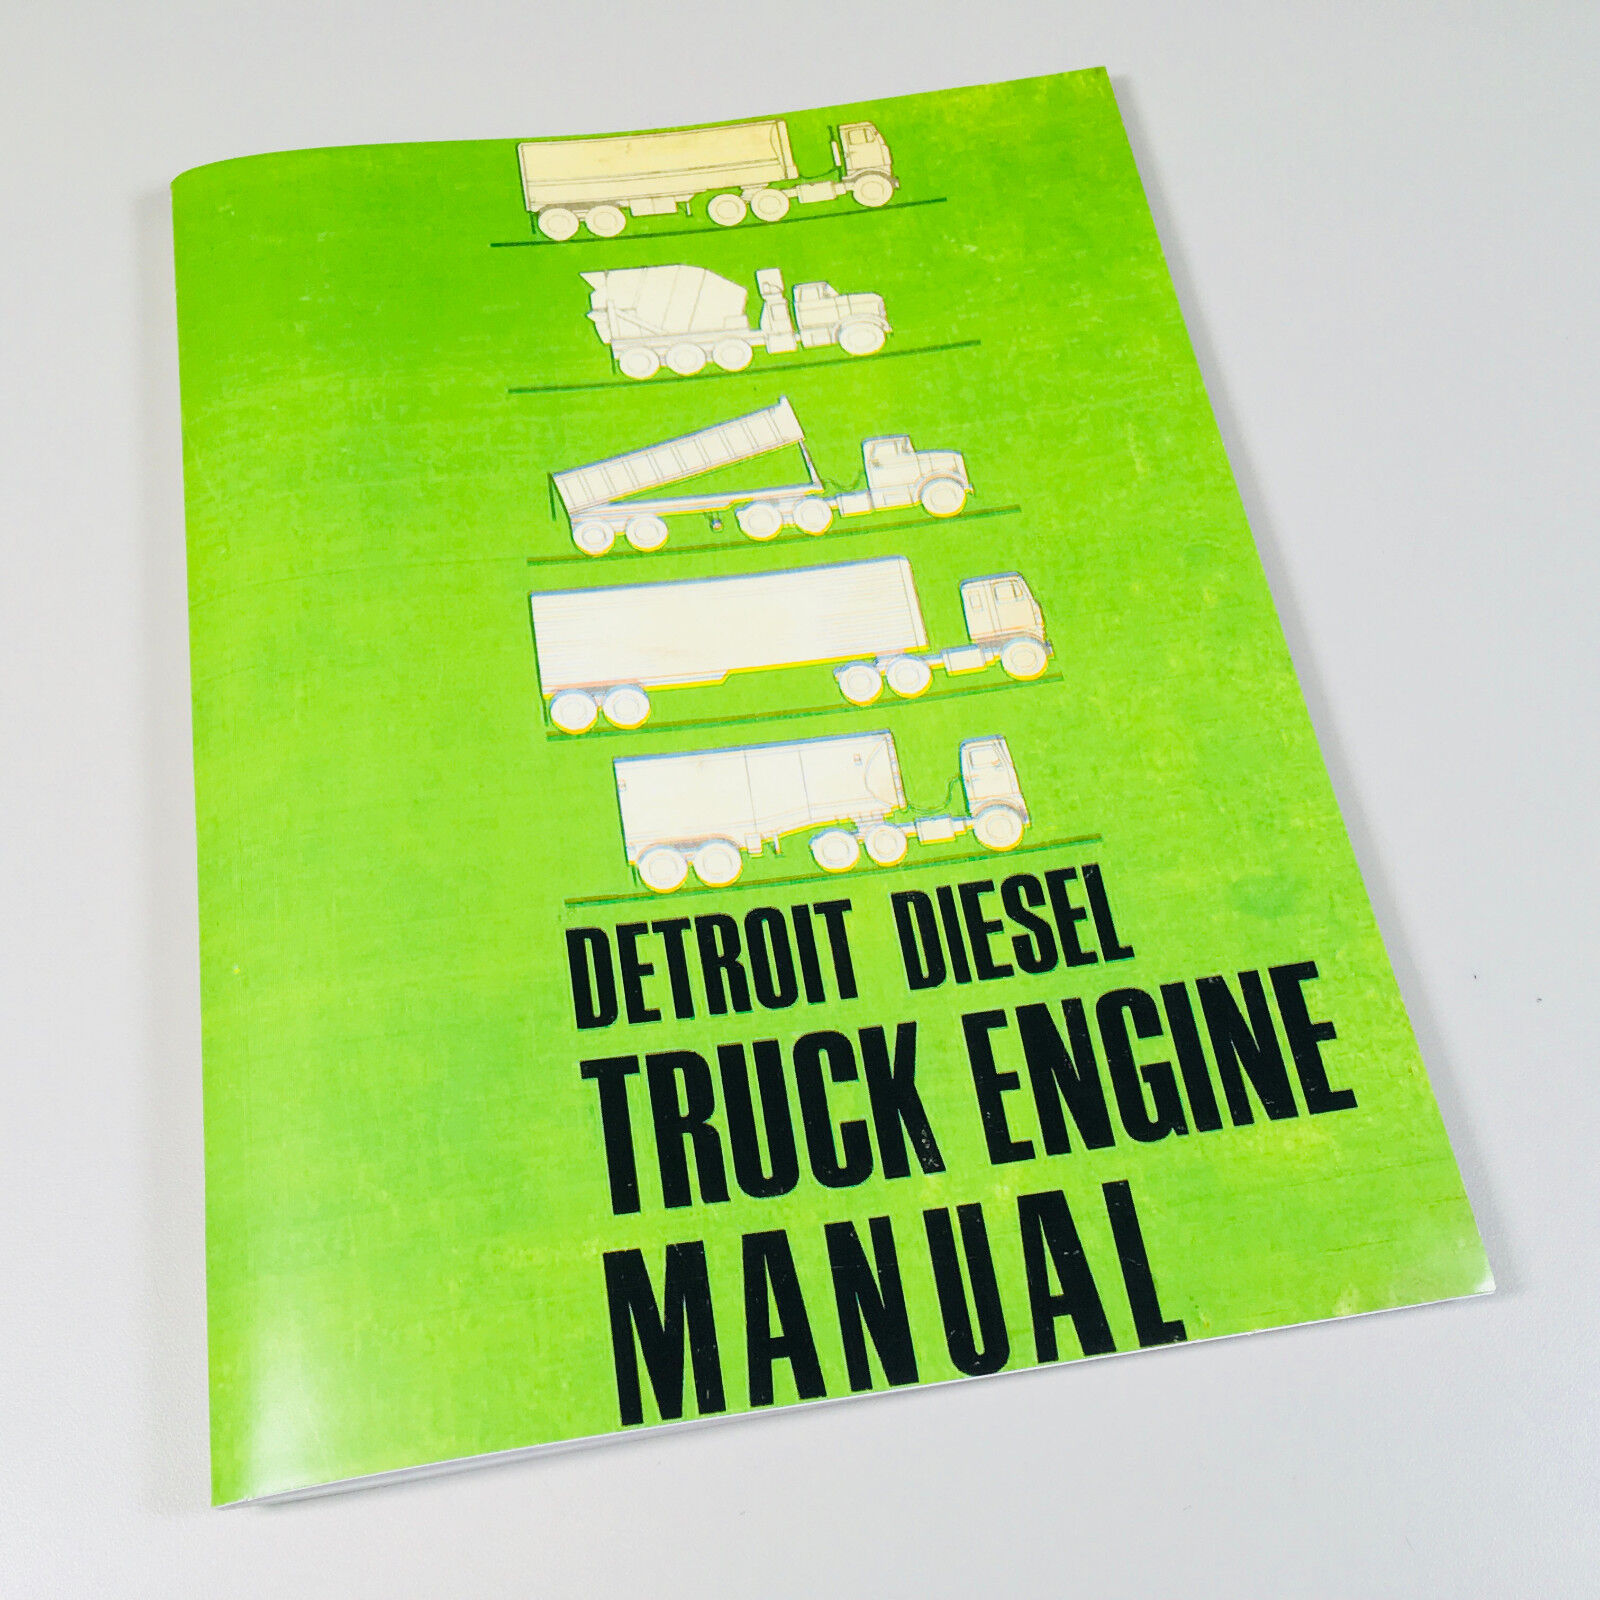 Complete Operations/Controls/Maintenance. This comprehensive manual includes